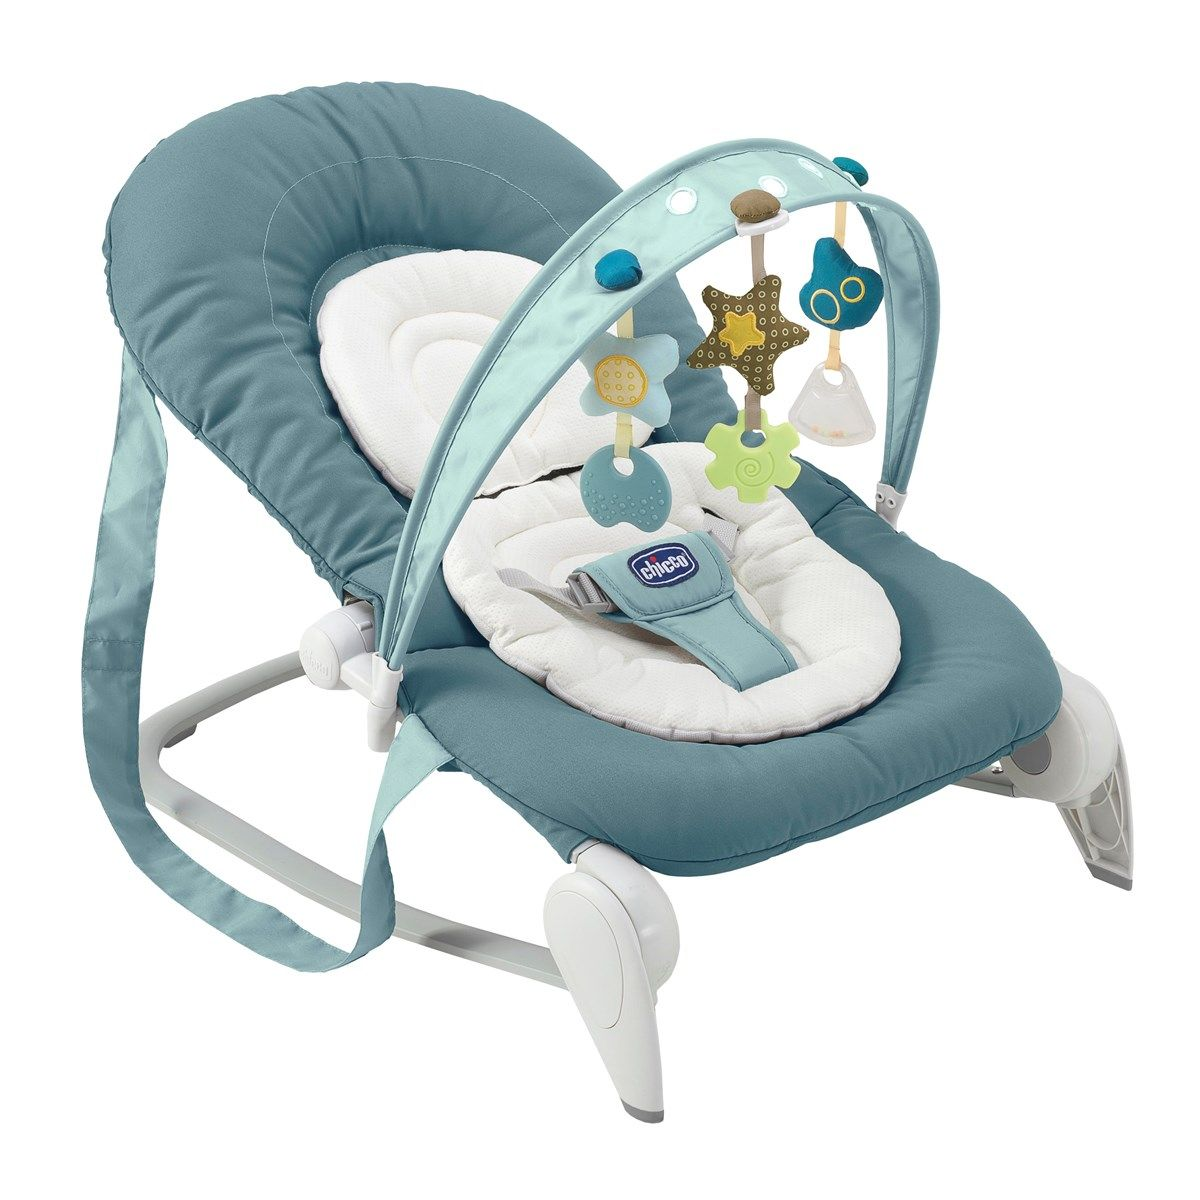 argos baby bouncer chair dining seat fabric read our review of the chicco hoopla rocker tested